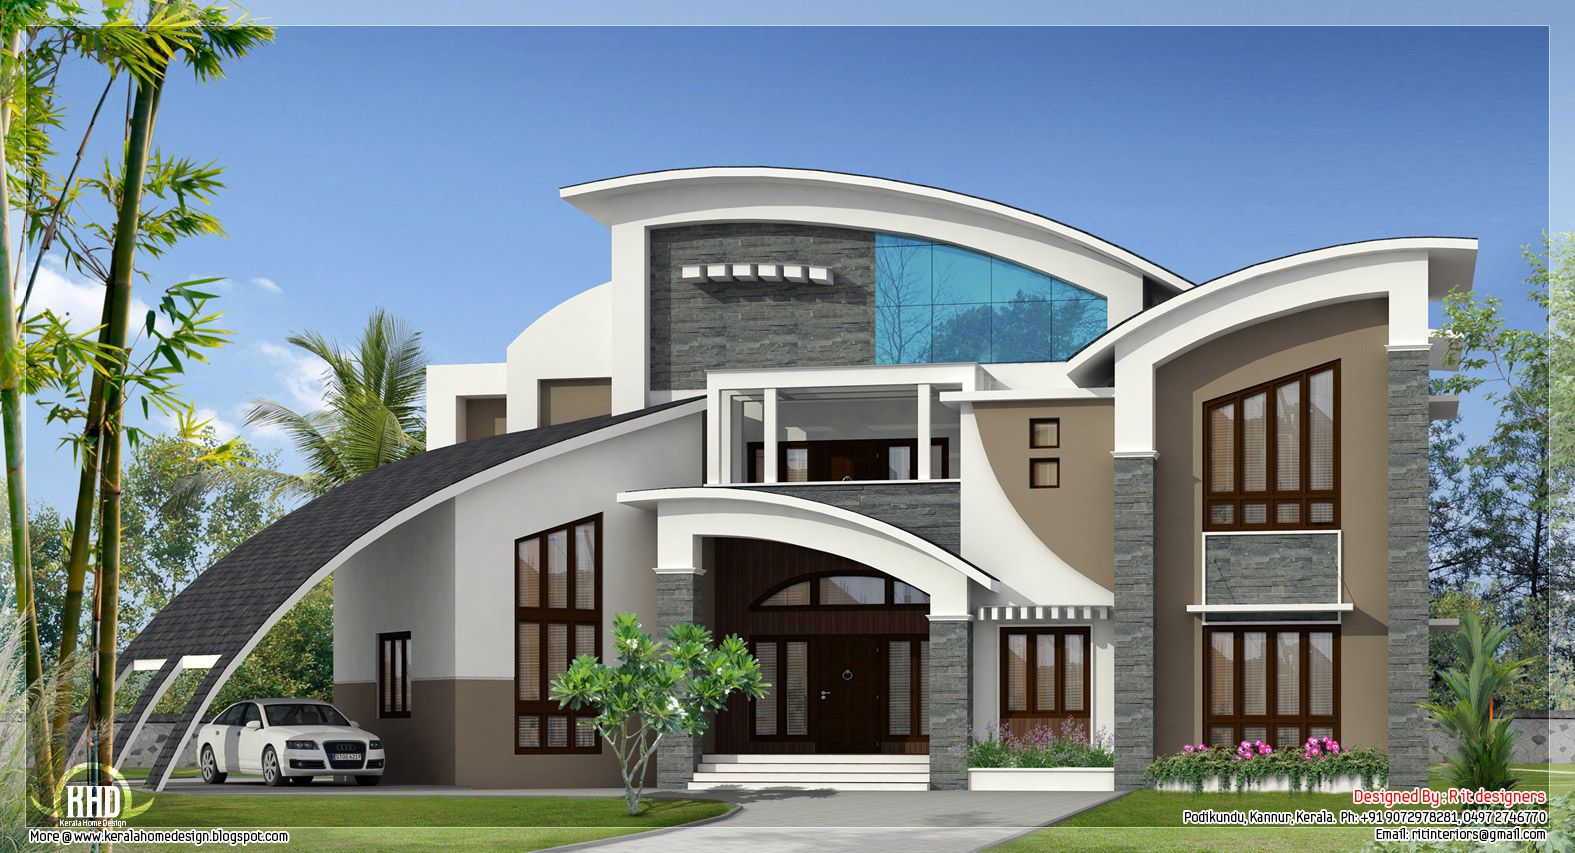 5870 Square Feet Square Meter) Square Yards) 5 Bedroom Super Luxury Kerala  Villa Design By R It Designers , Kannur, Kerala House I.